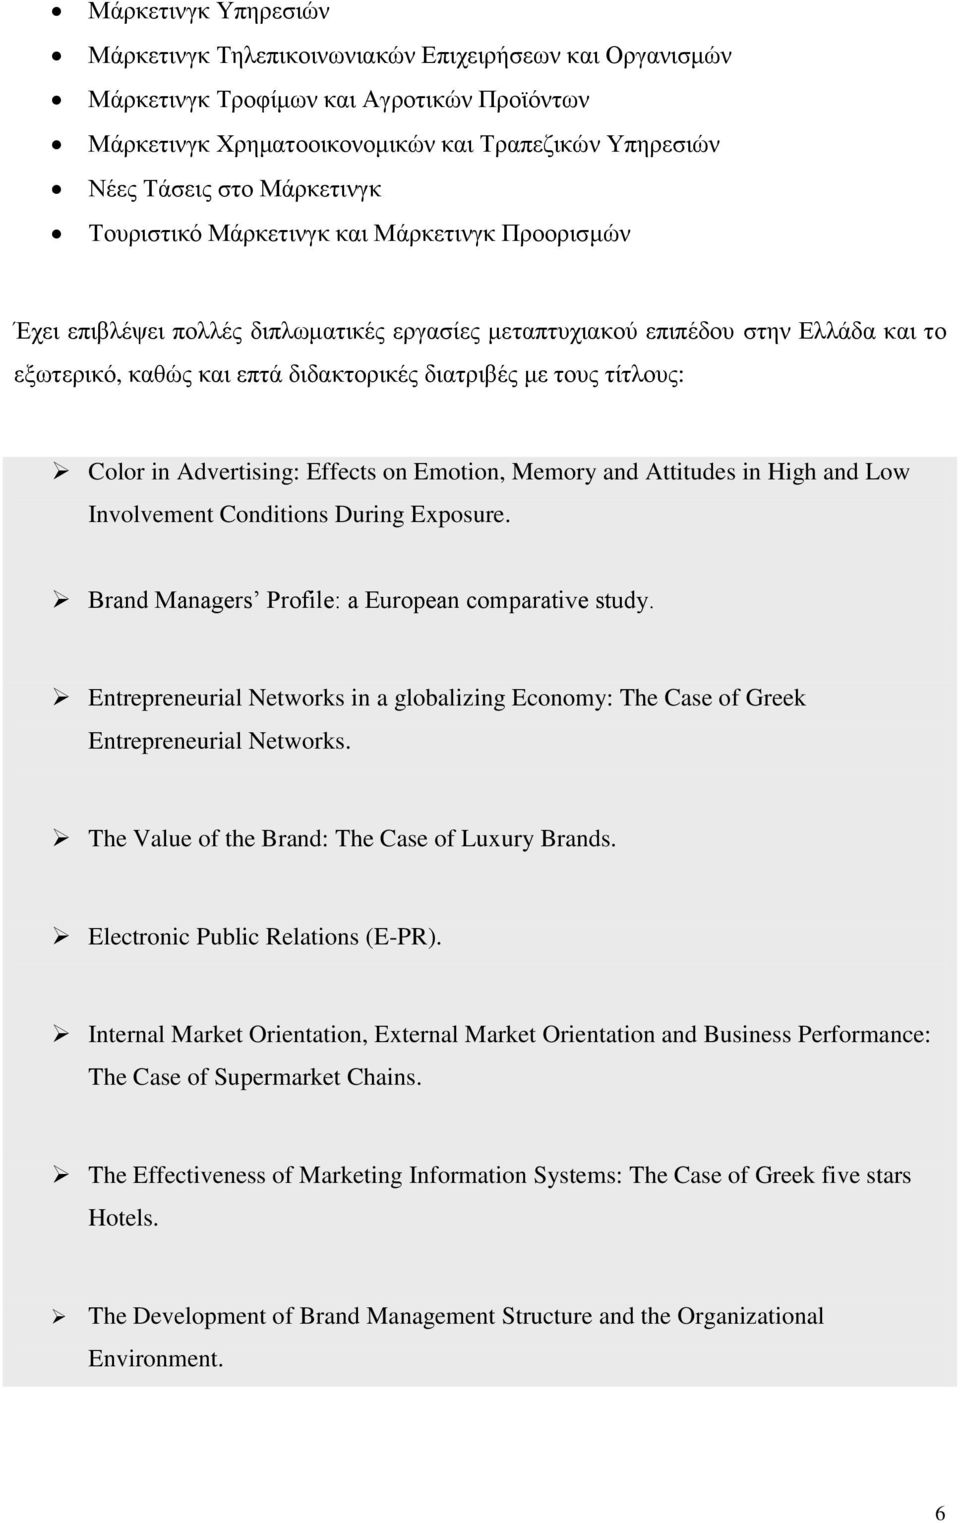 τους τίτλους: Color in Advertising: Effects on Emotion, Memory and Attitudes in High and Low Involvement Conditions During Exposure. Brand Managers Profile: a European comparative study.